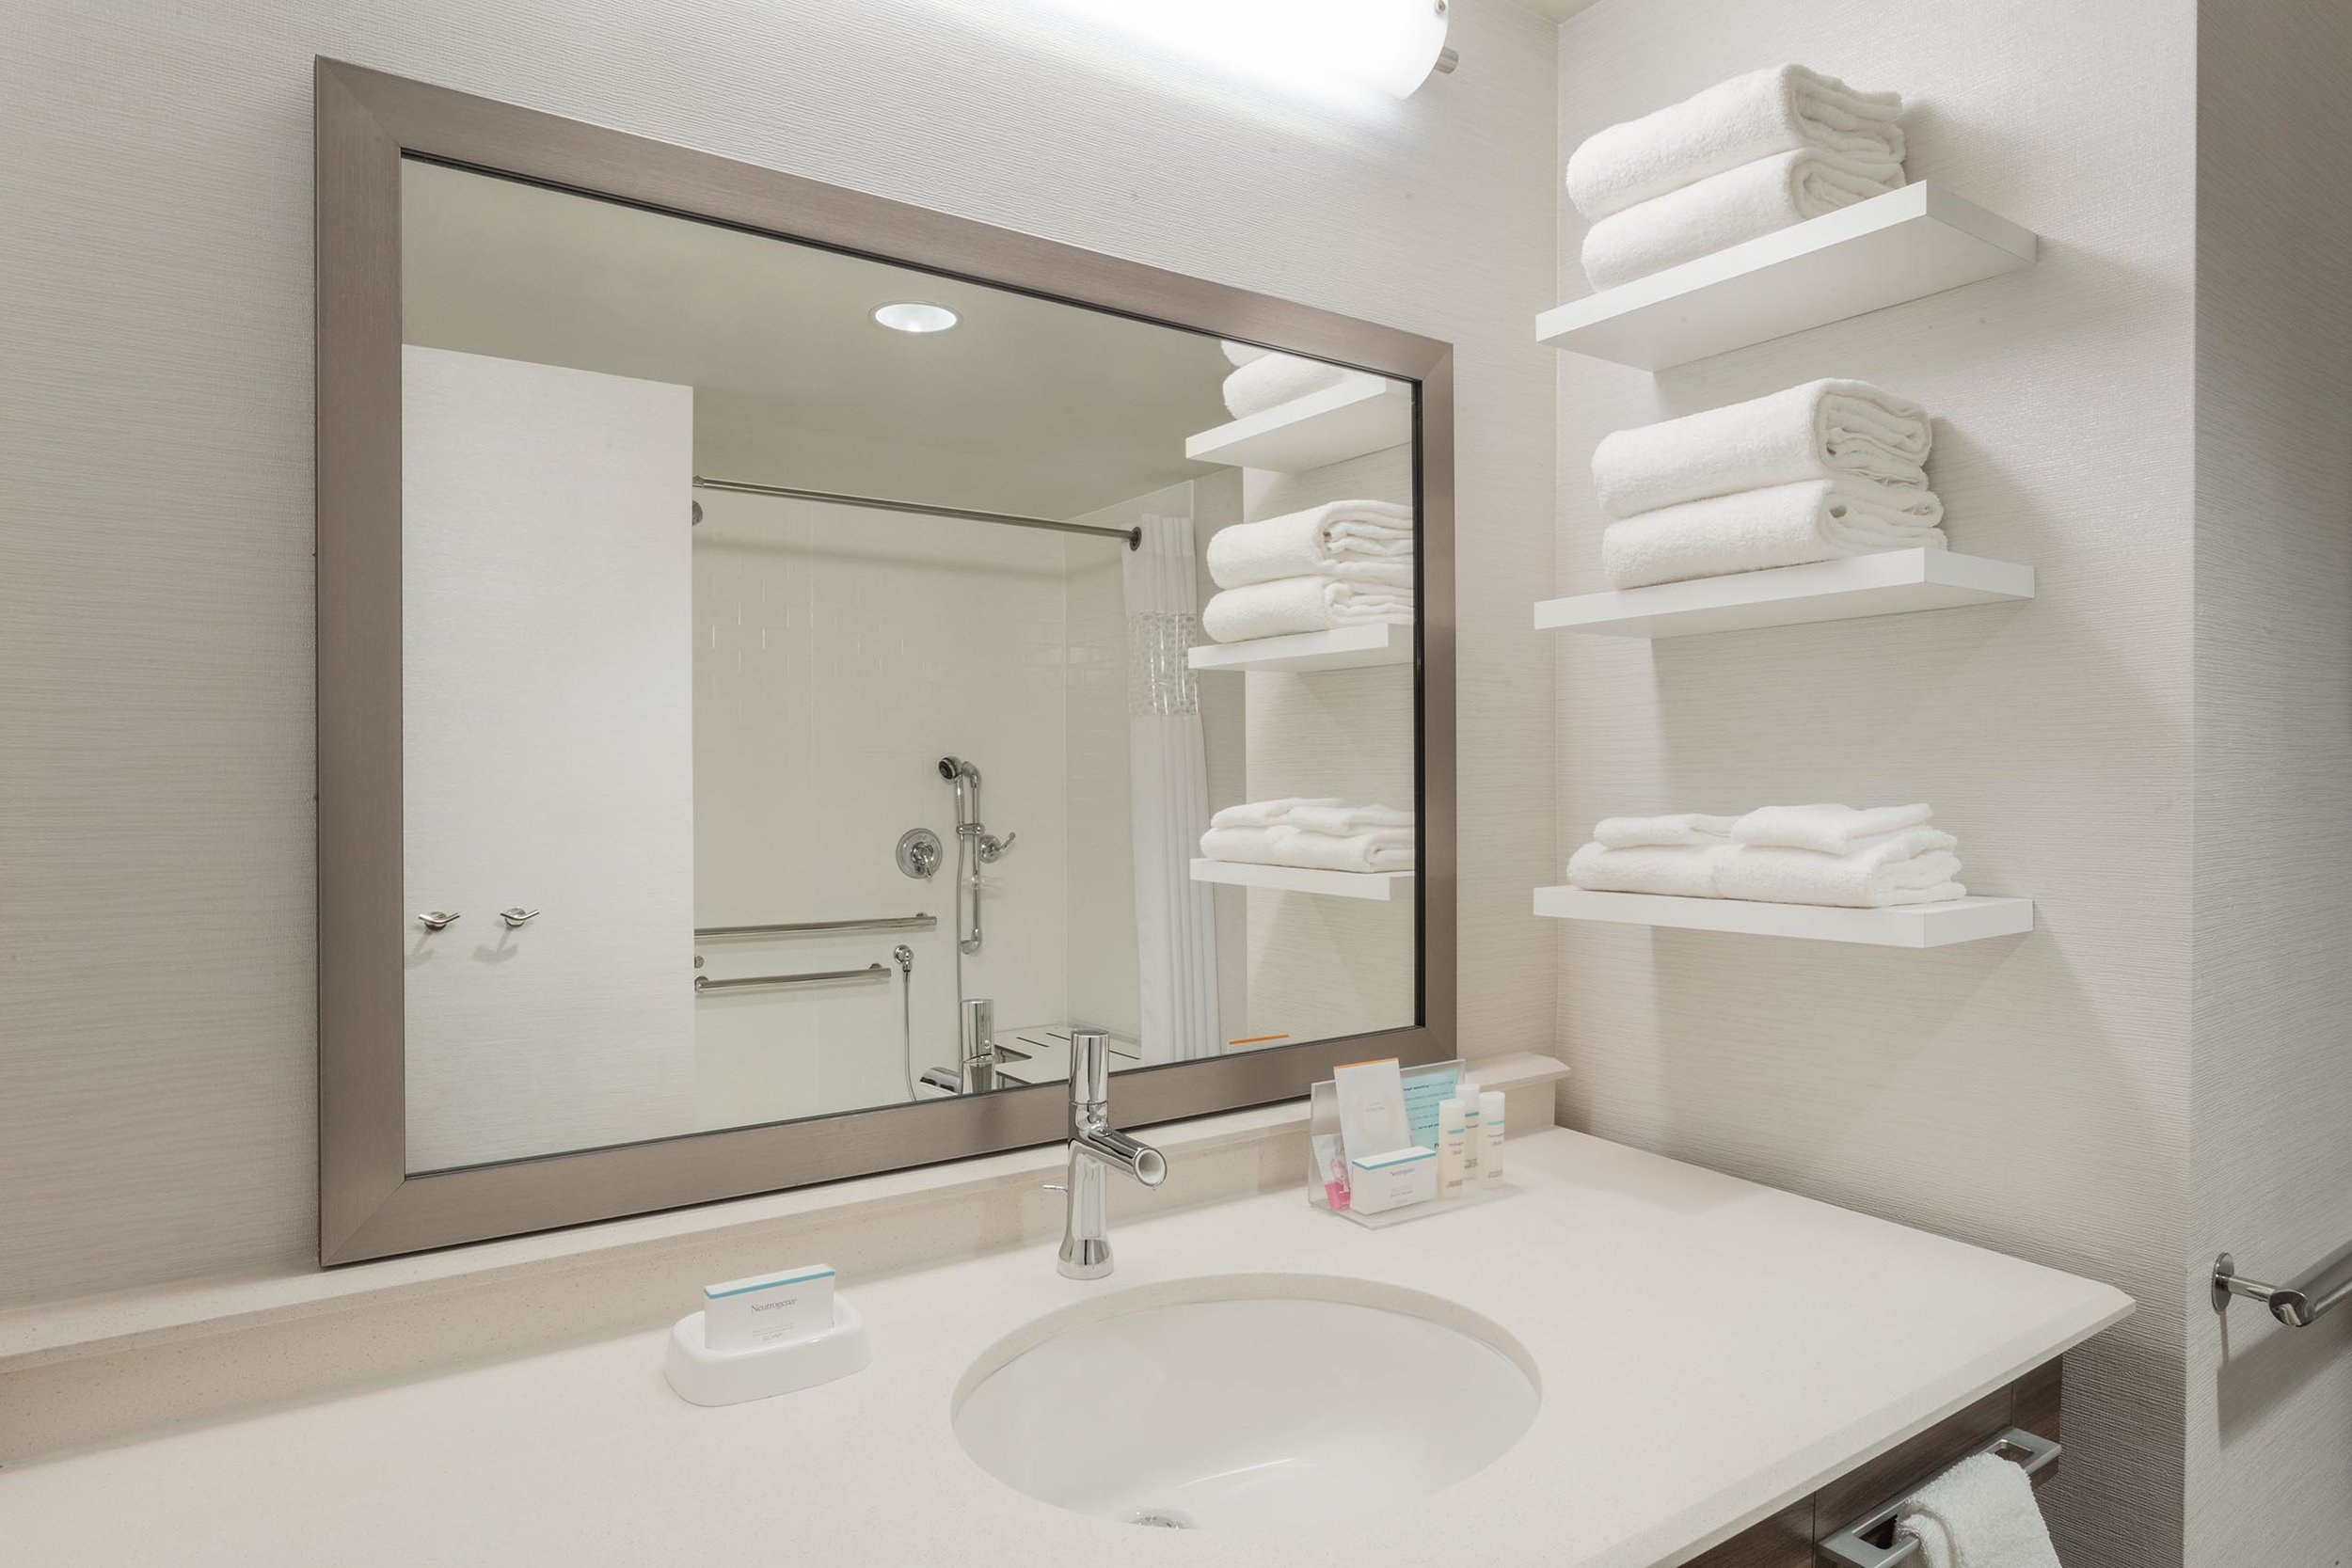 Guest bathroom in the Hampton Inn & Suites in West Des Moines, IA